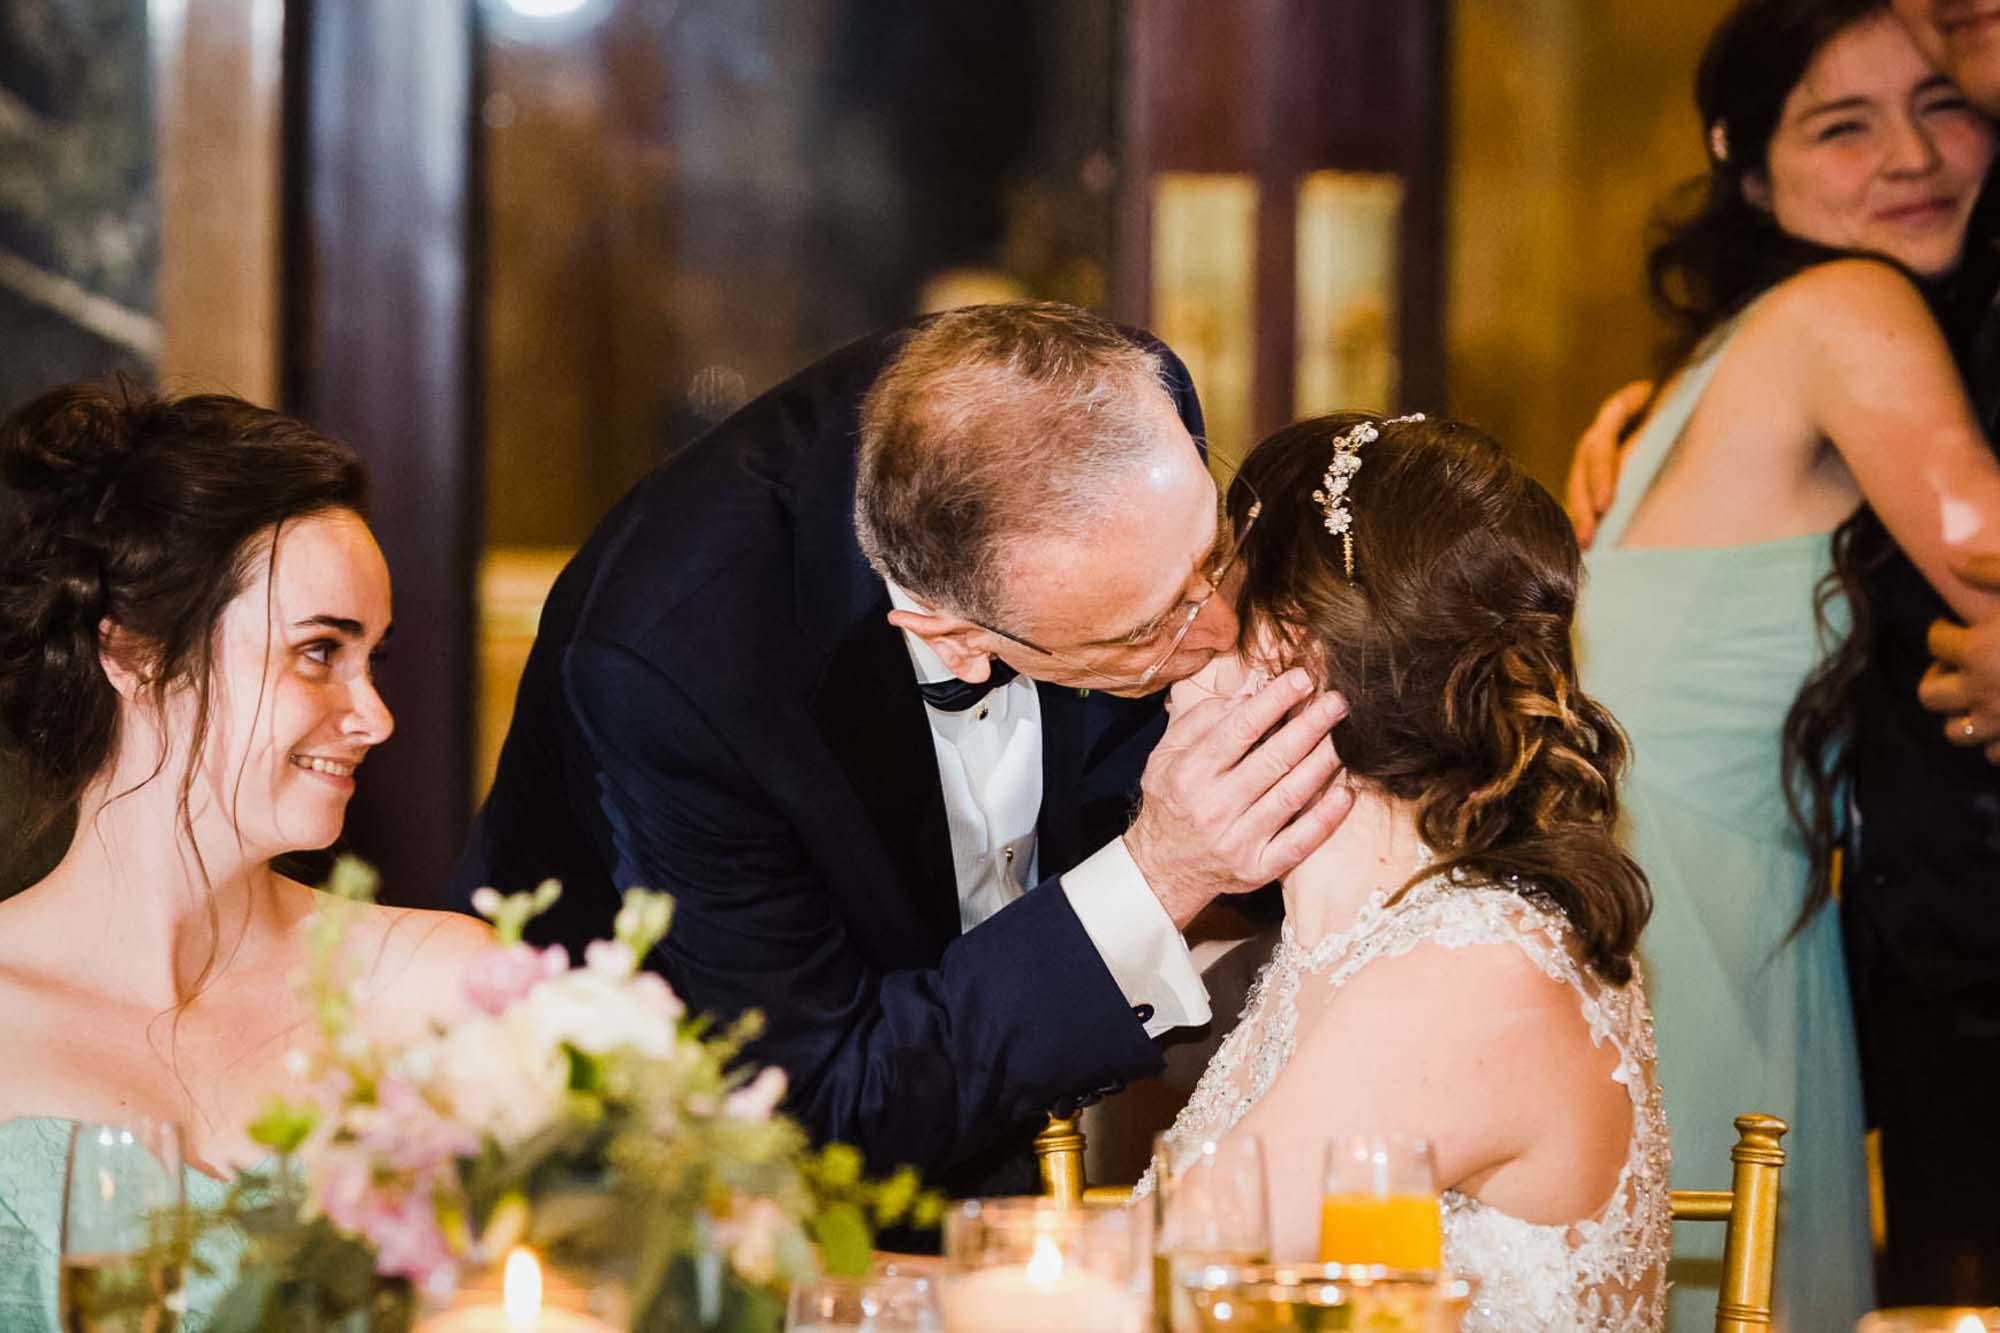 father of the bride kisses his daughter gently on the cheek while a bridesmaid smiles at them